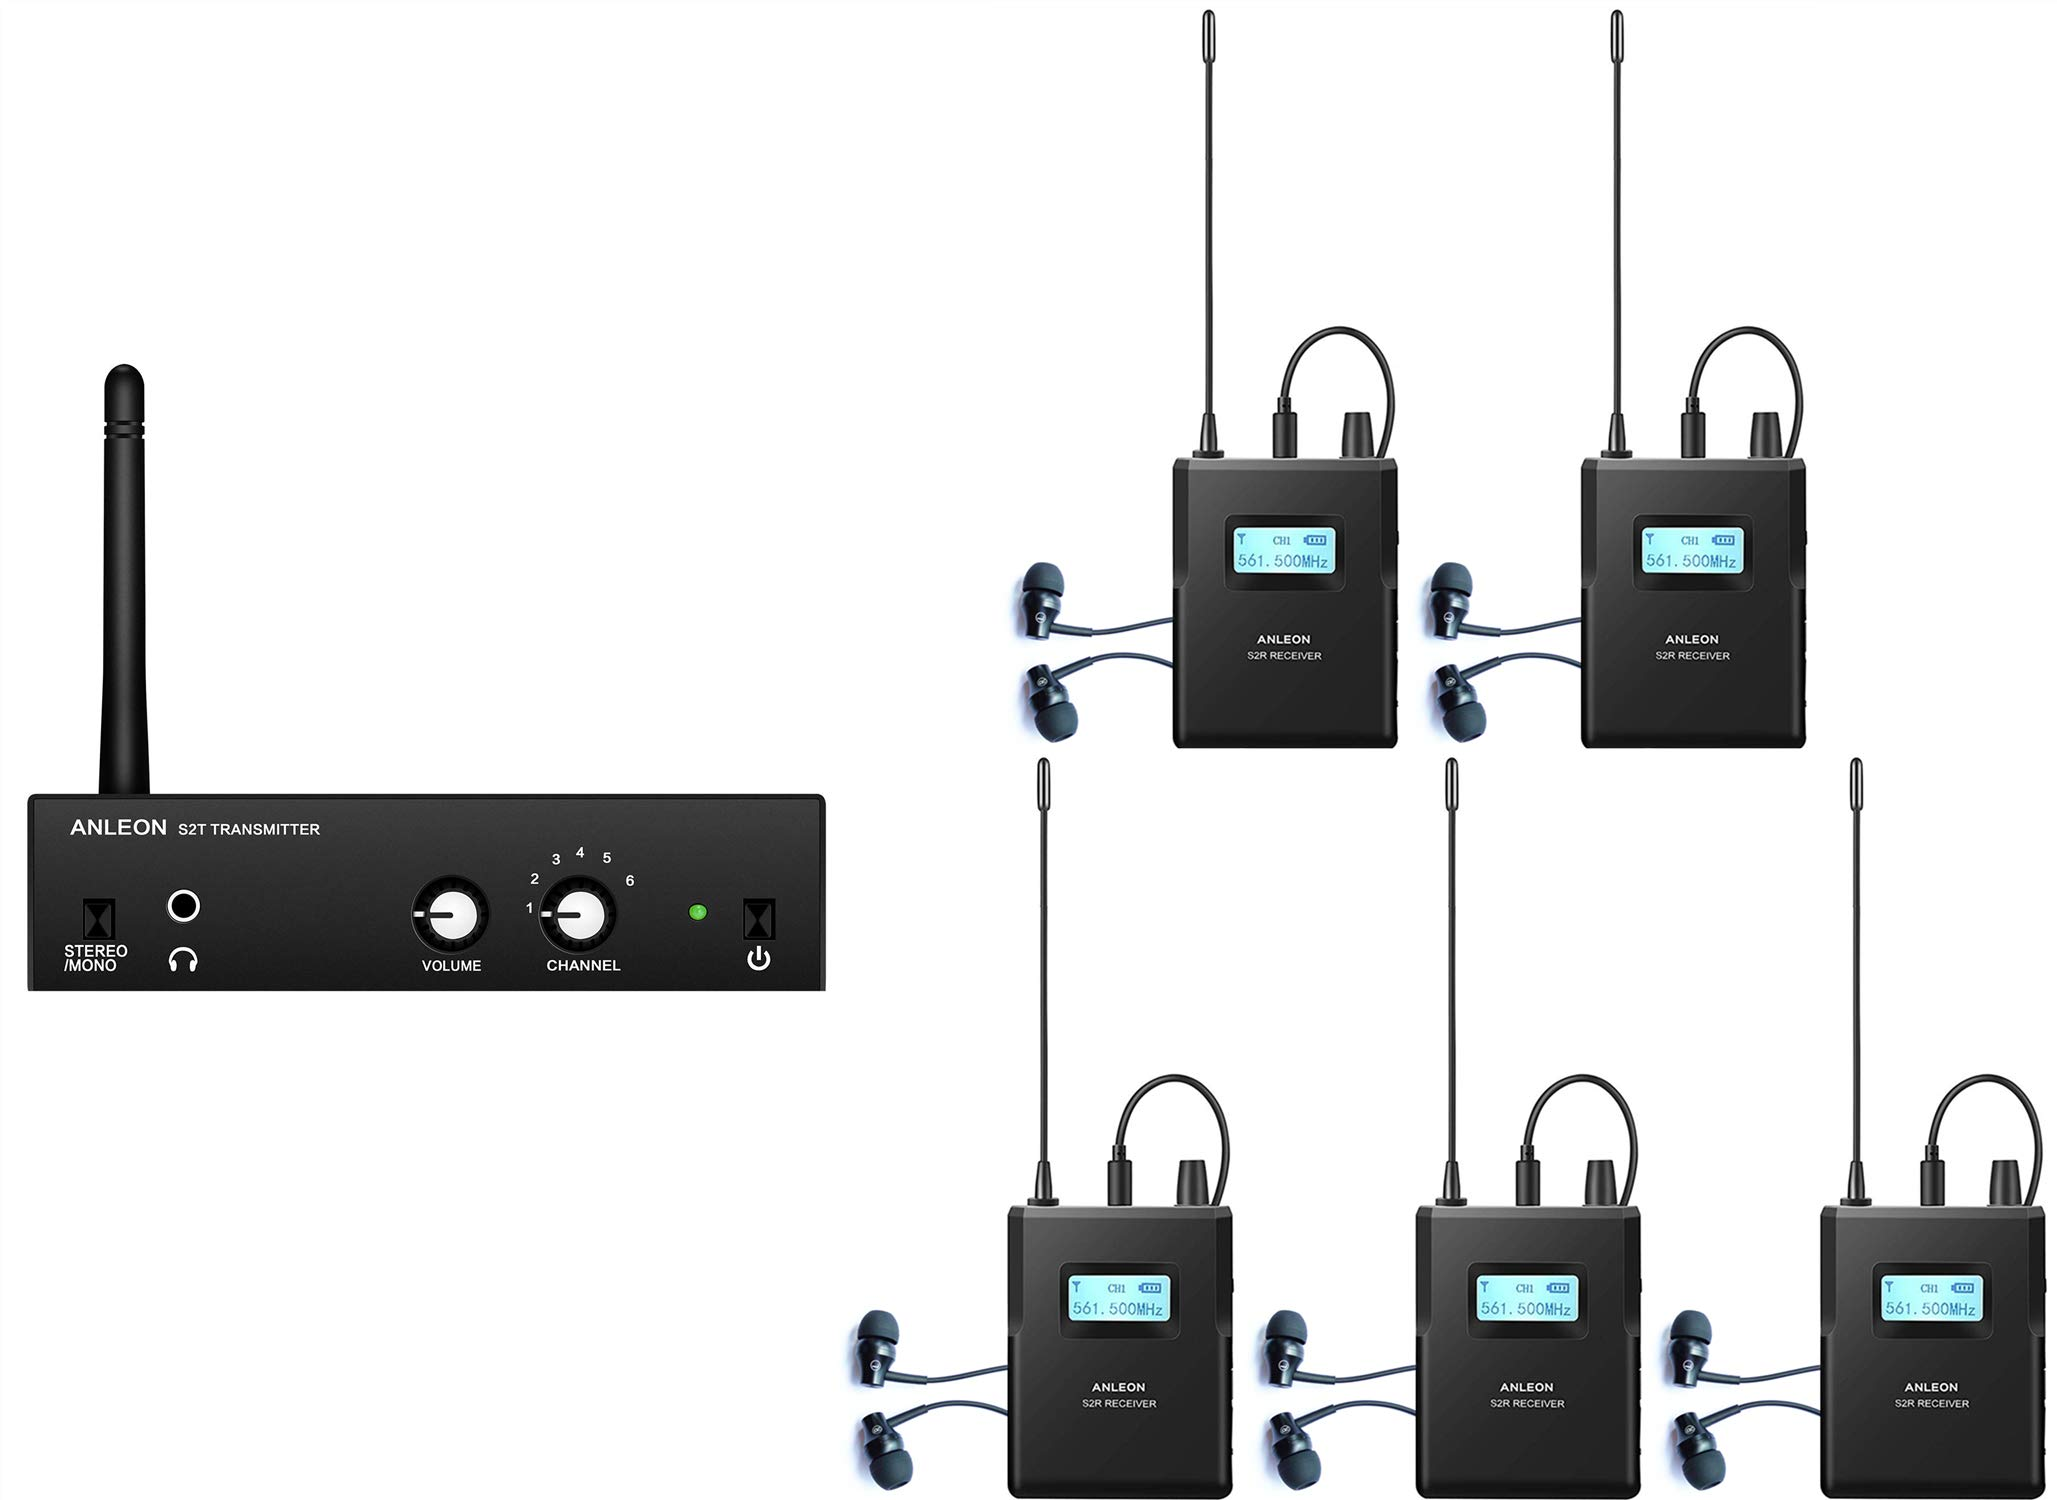 Anleon S2 Wireless Stereo in Ear Monitor System for Recording Studio Stage Audio Monitoring 561-568Mhz (1 Transmitter 5 receivers)